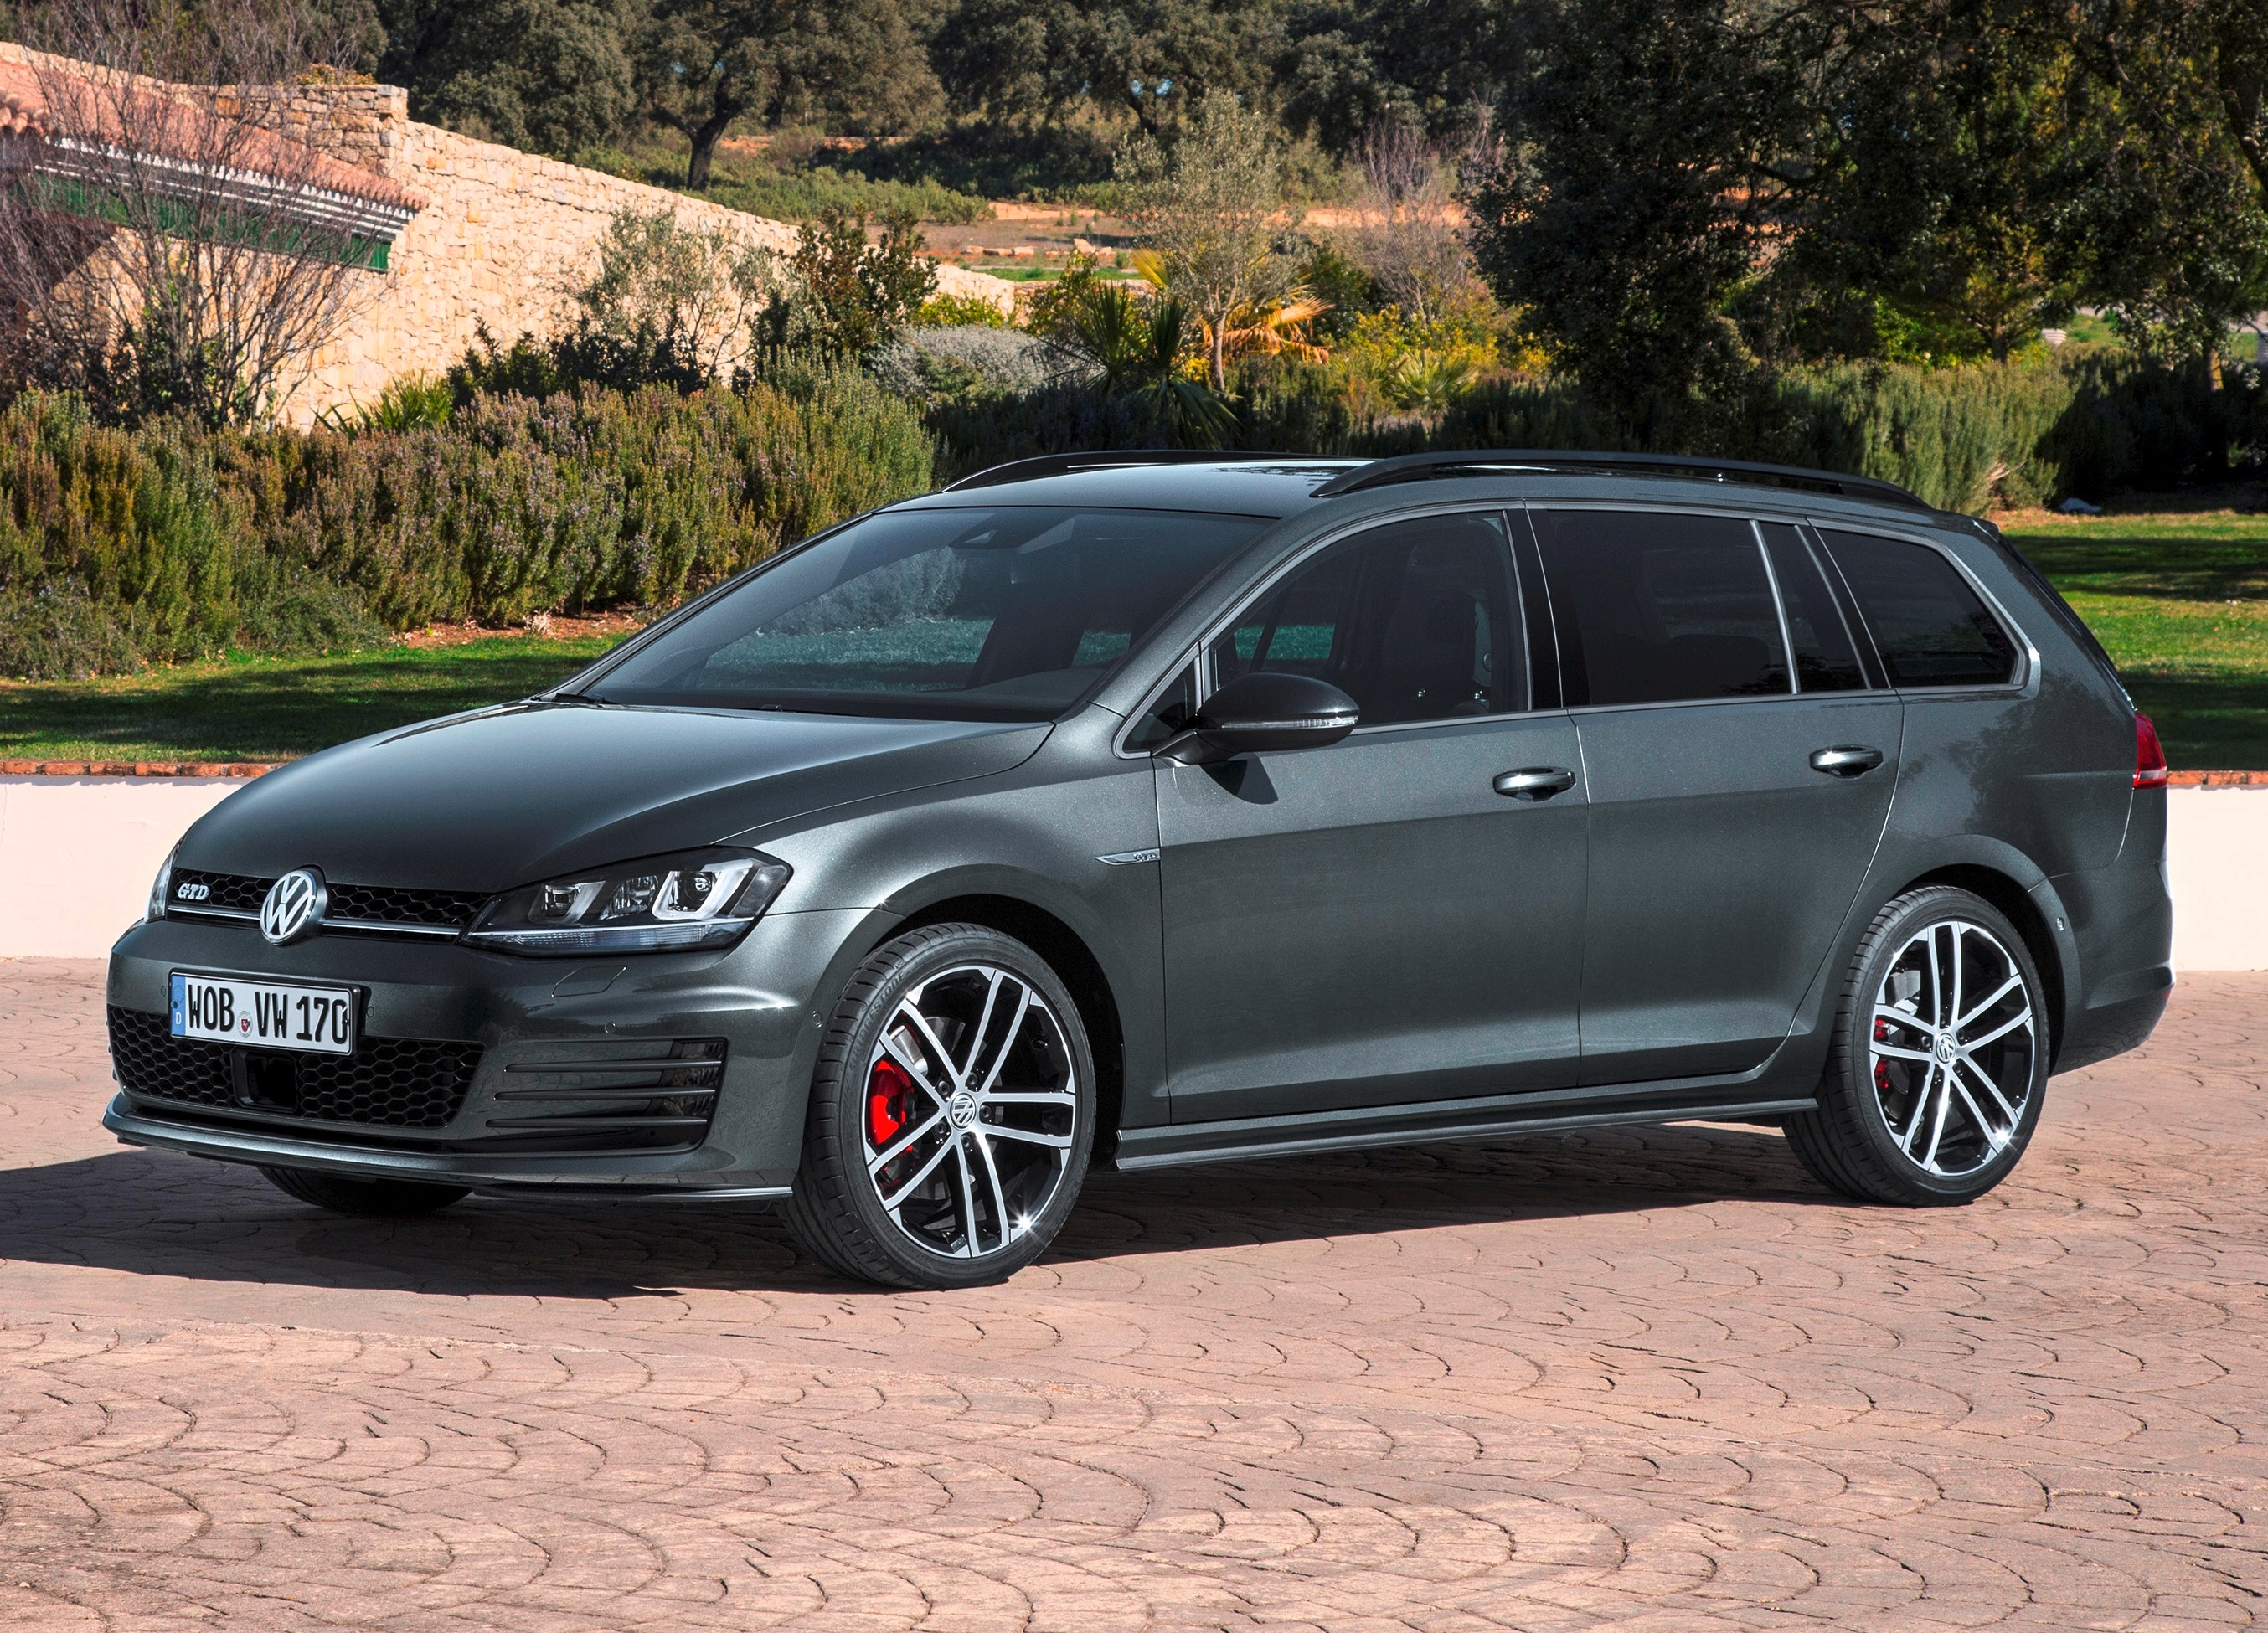 tdi images 2015 vw golf vii gtd variant hd wallpaper and background